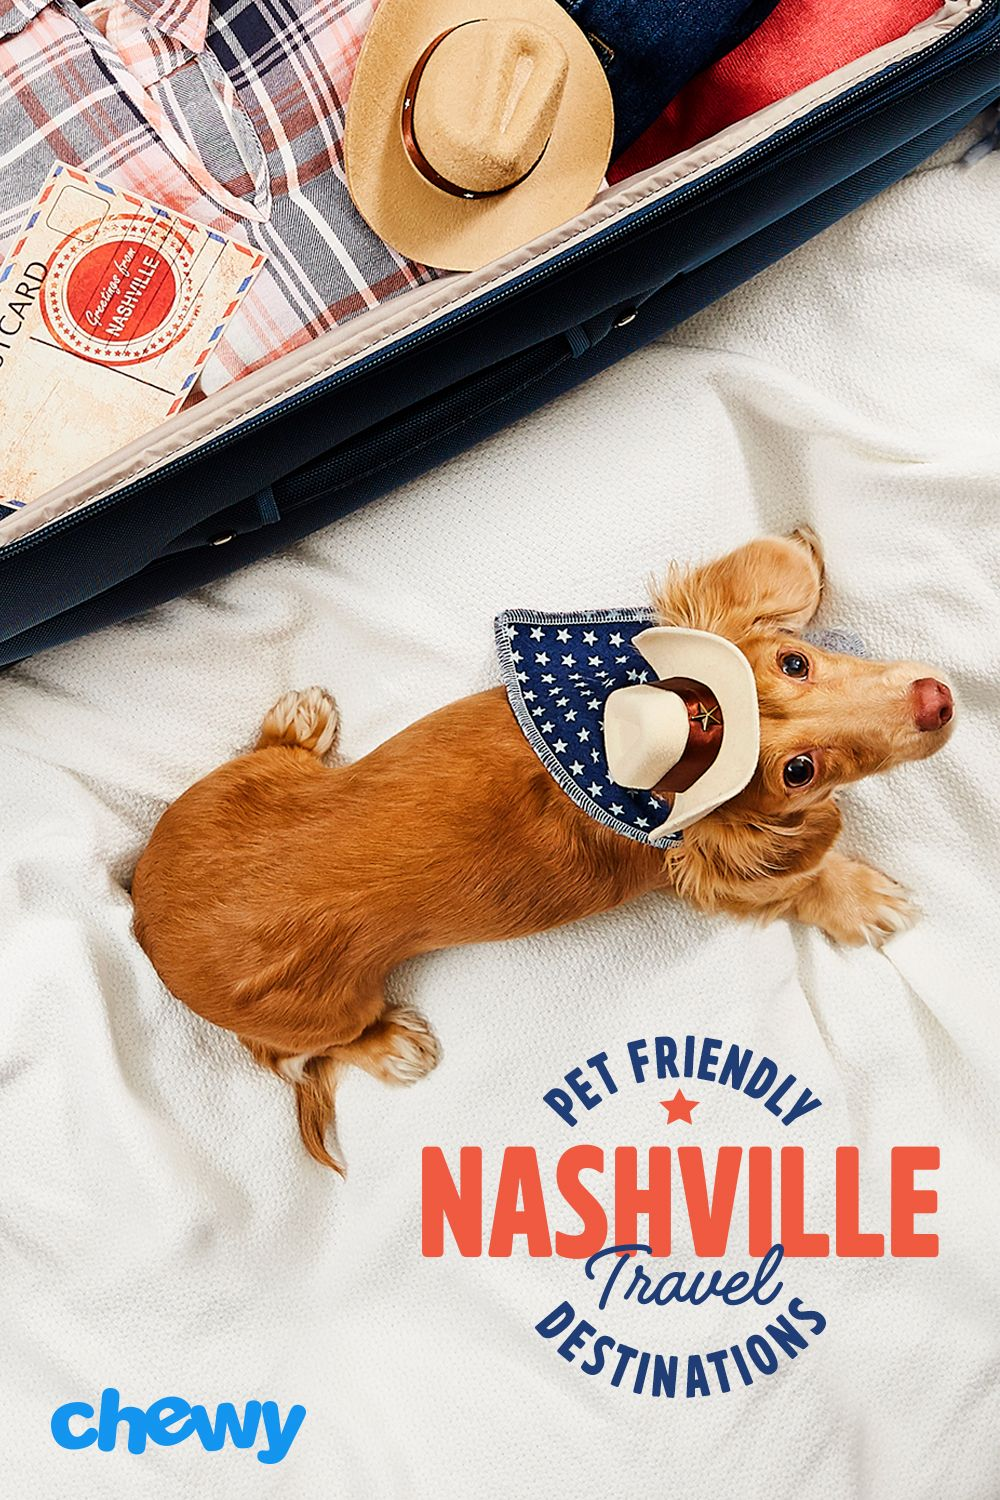 Things To Do In Nashville That Are Dog Friendly Pet Friendly